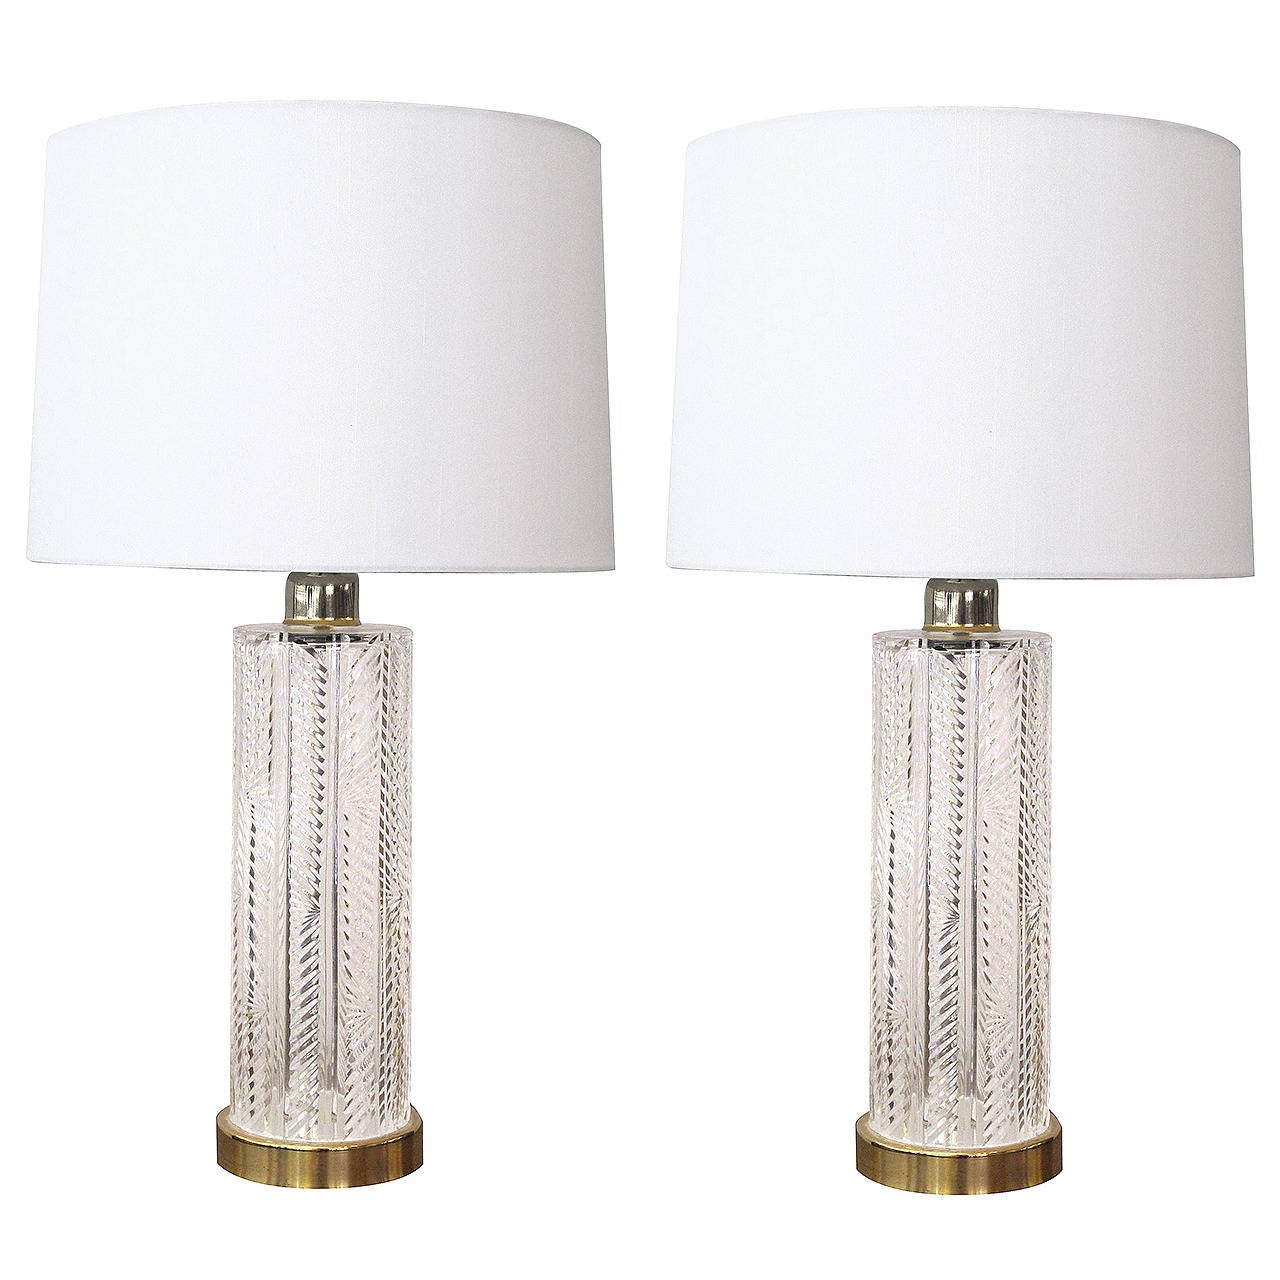 Crystal Chandelier Table Lamps For Sale: A Good Pair Of Waterford Crystal Cylindrical-Form Lamps At